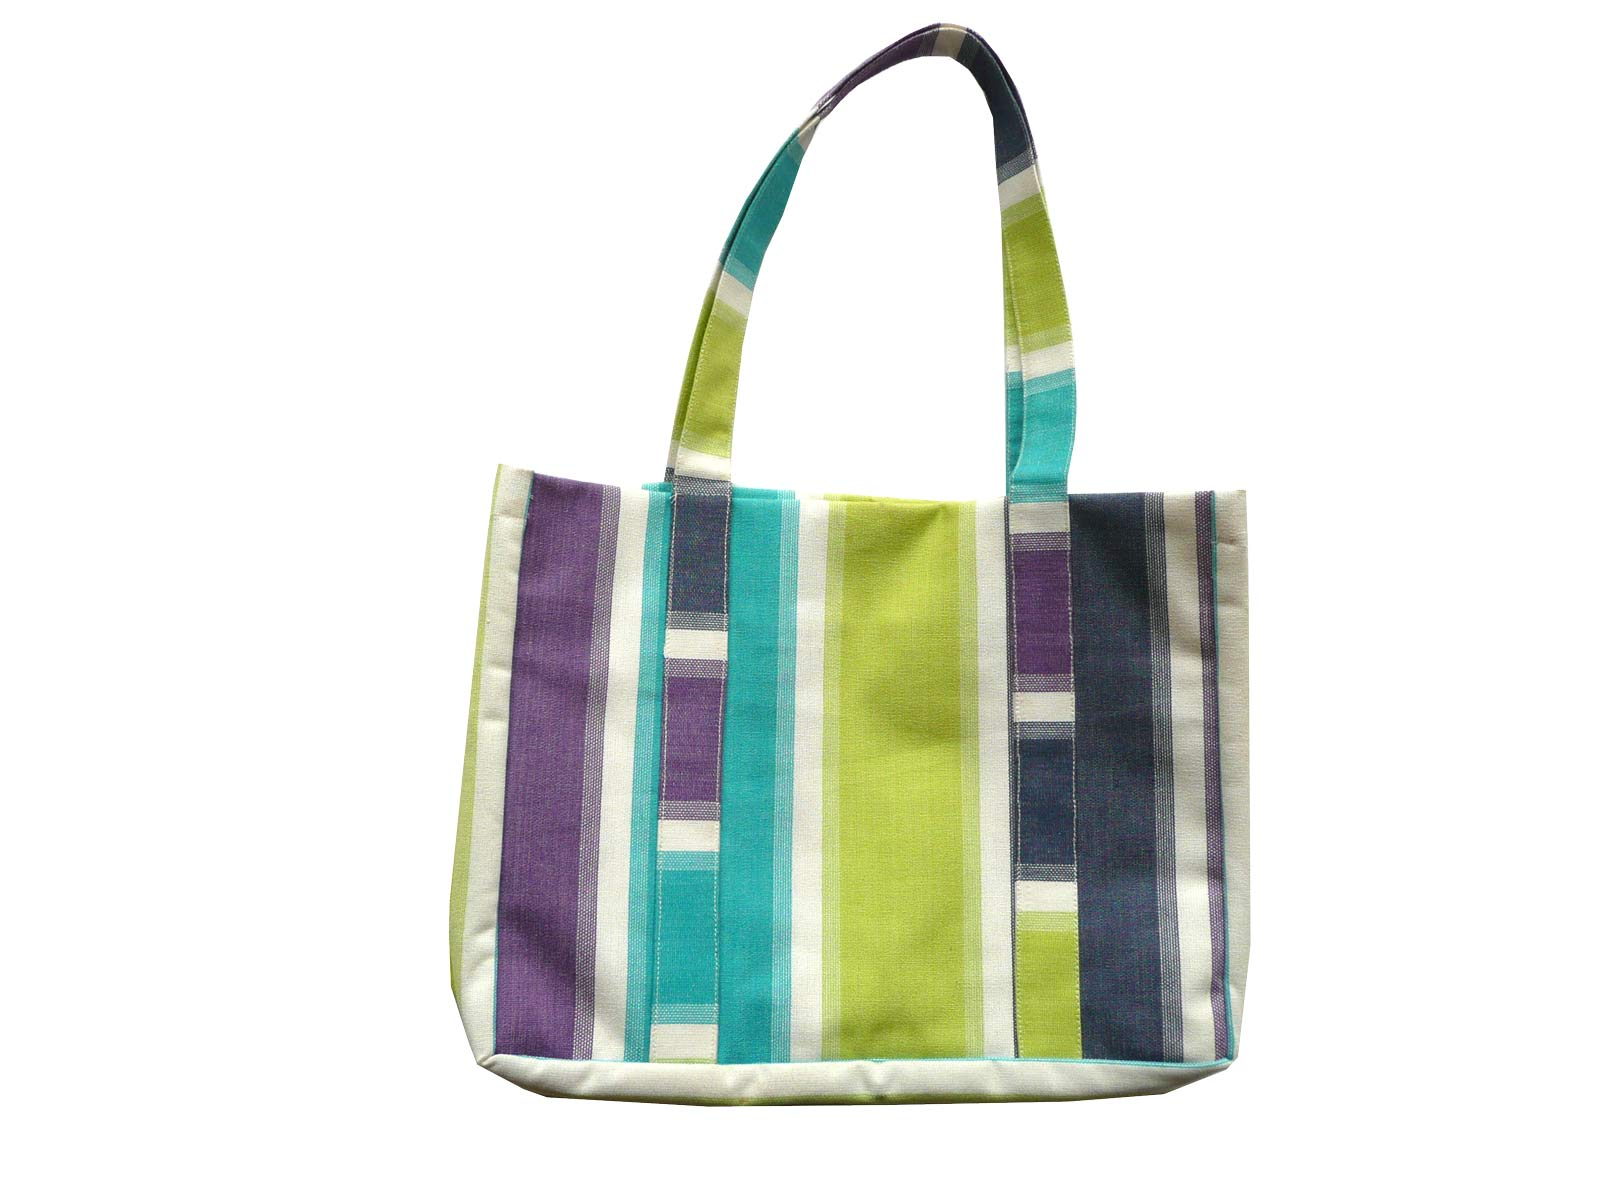 Striped Beach Tote Bag lime green, turquoise, navy white stripes